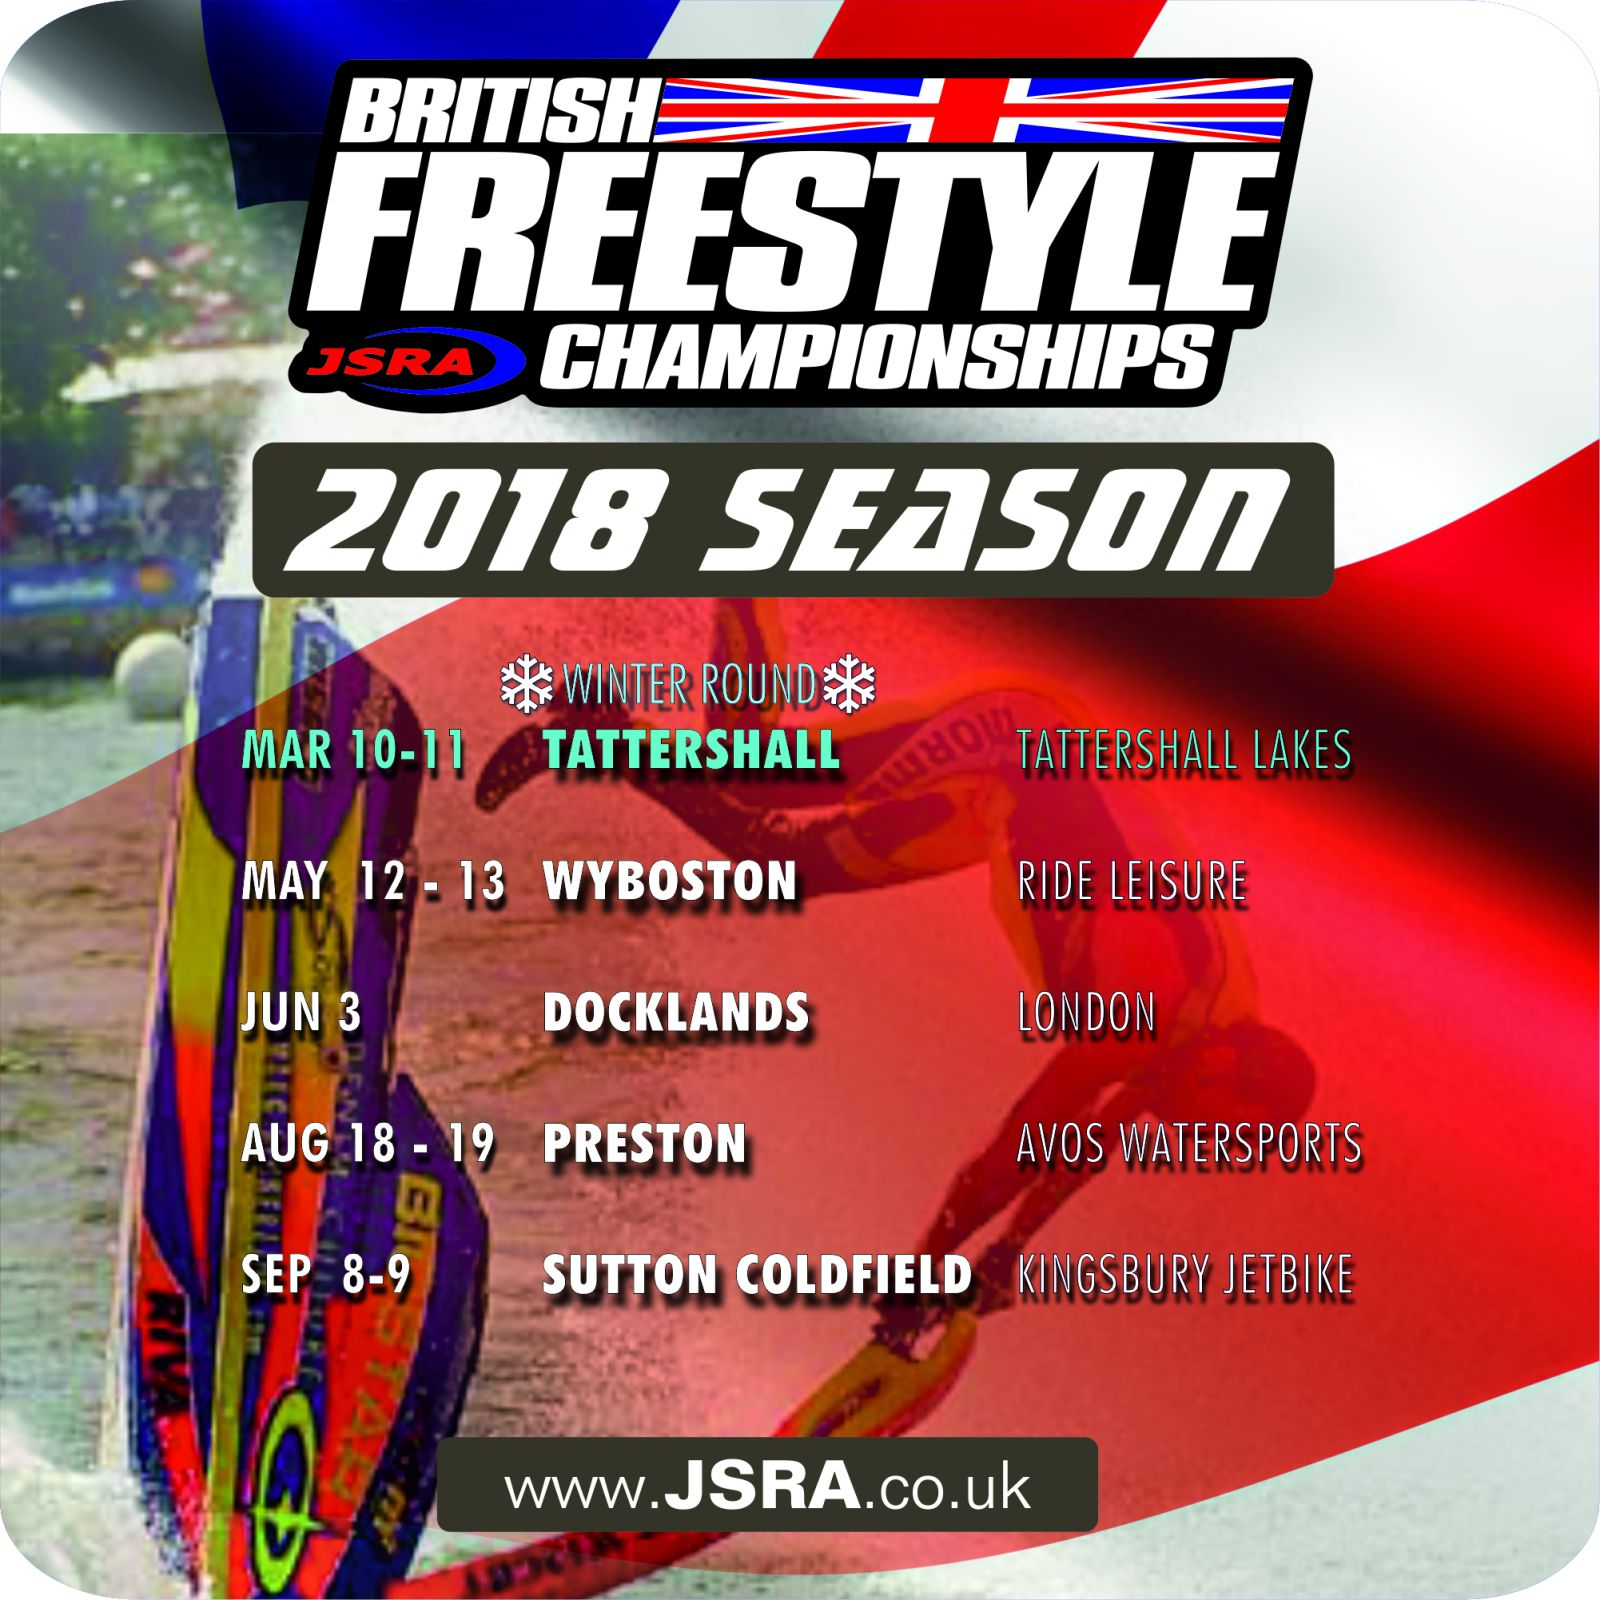 2018 British Freestyle Championships Dates